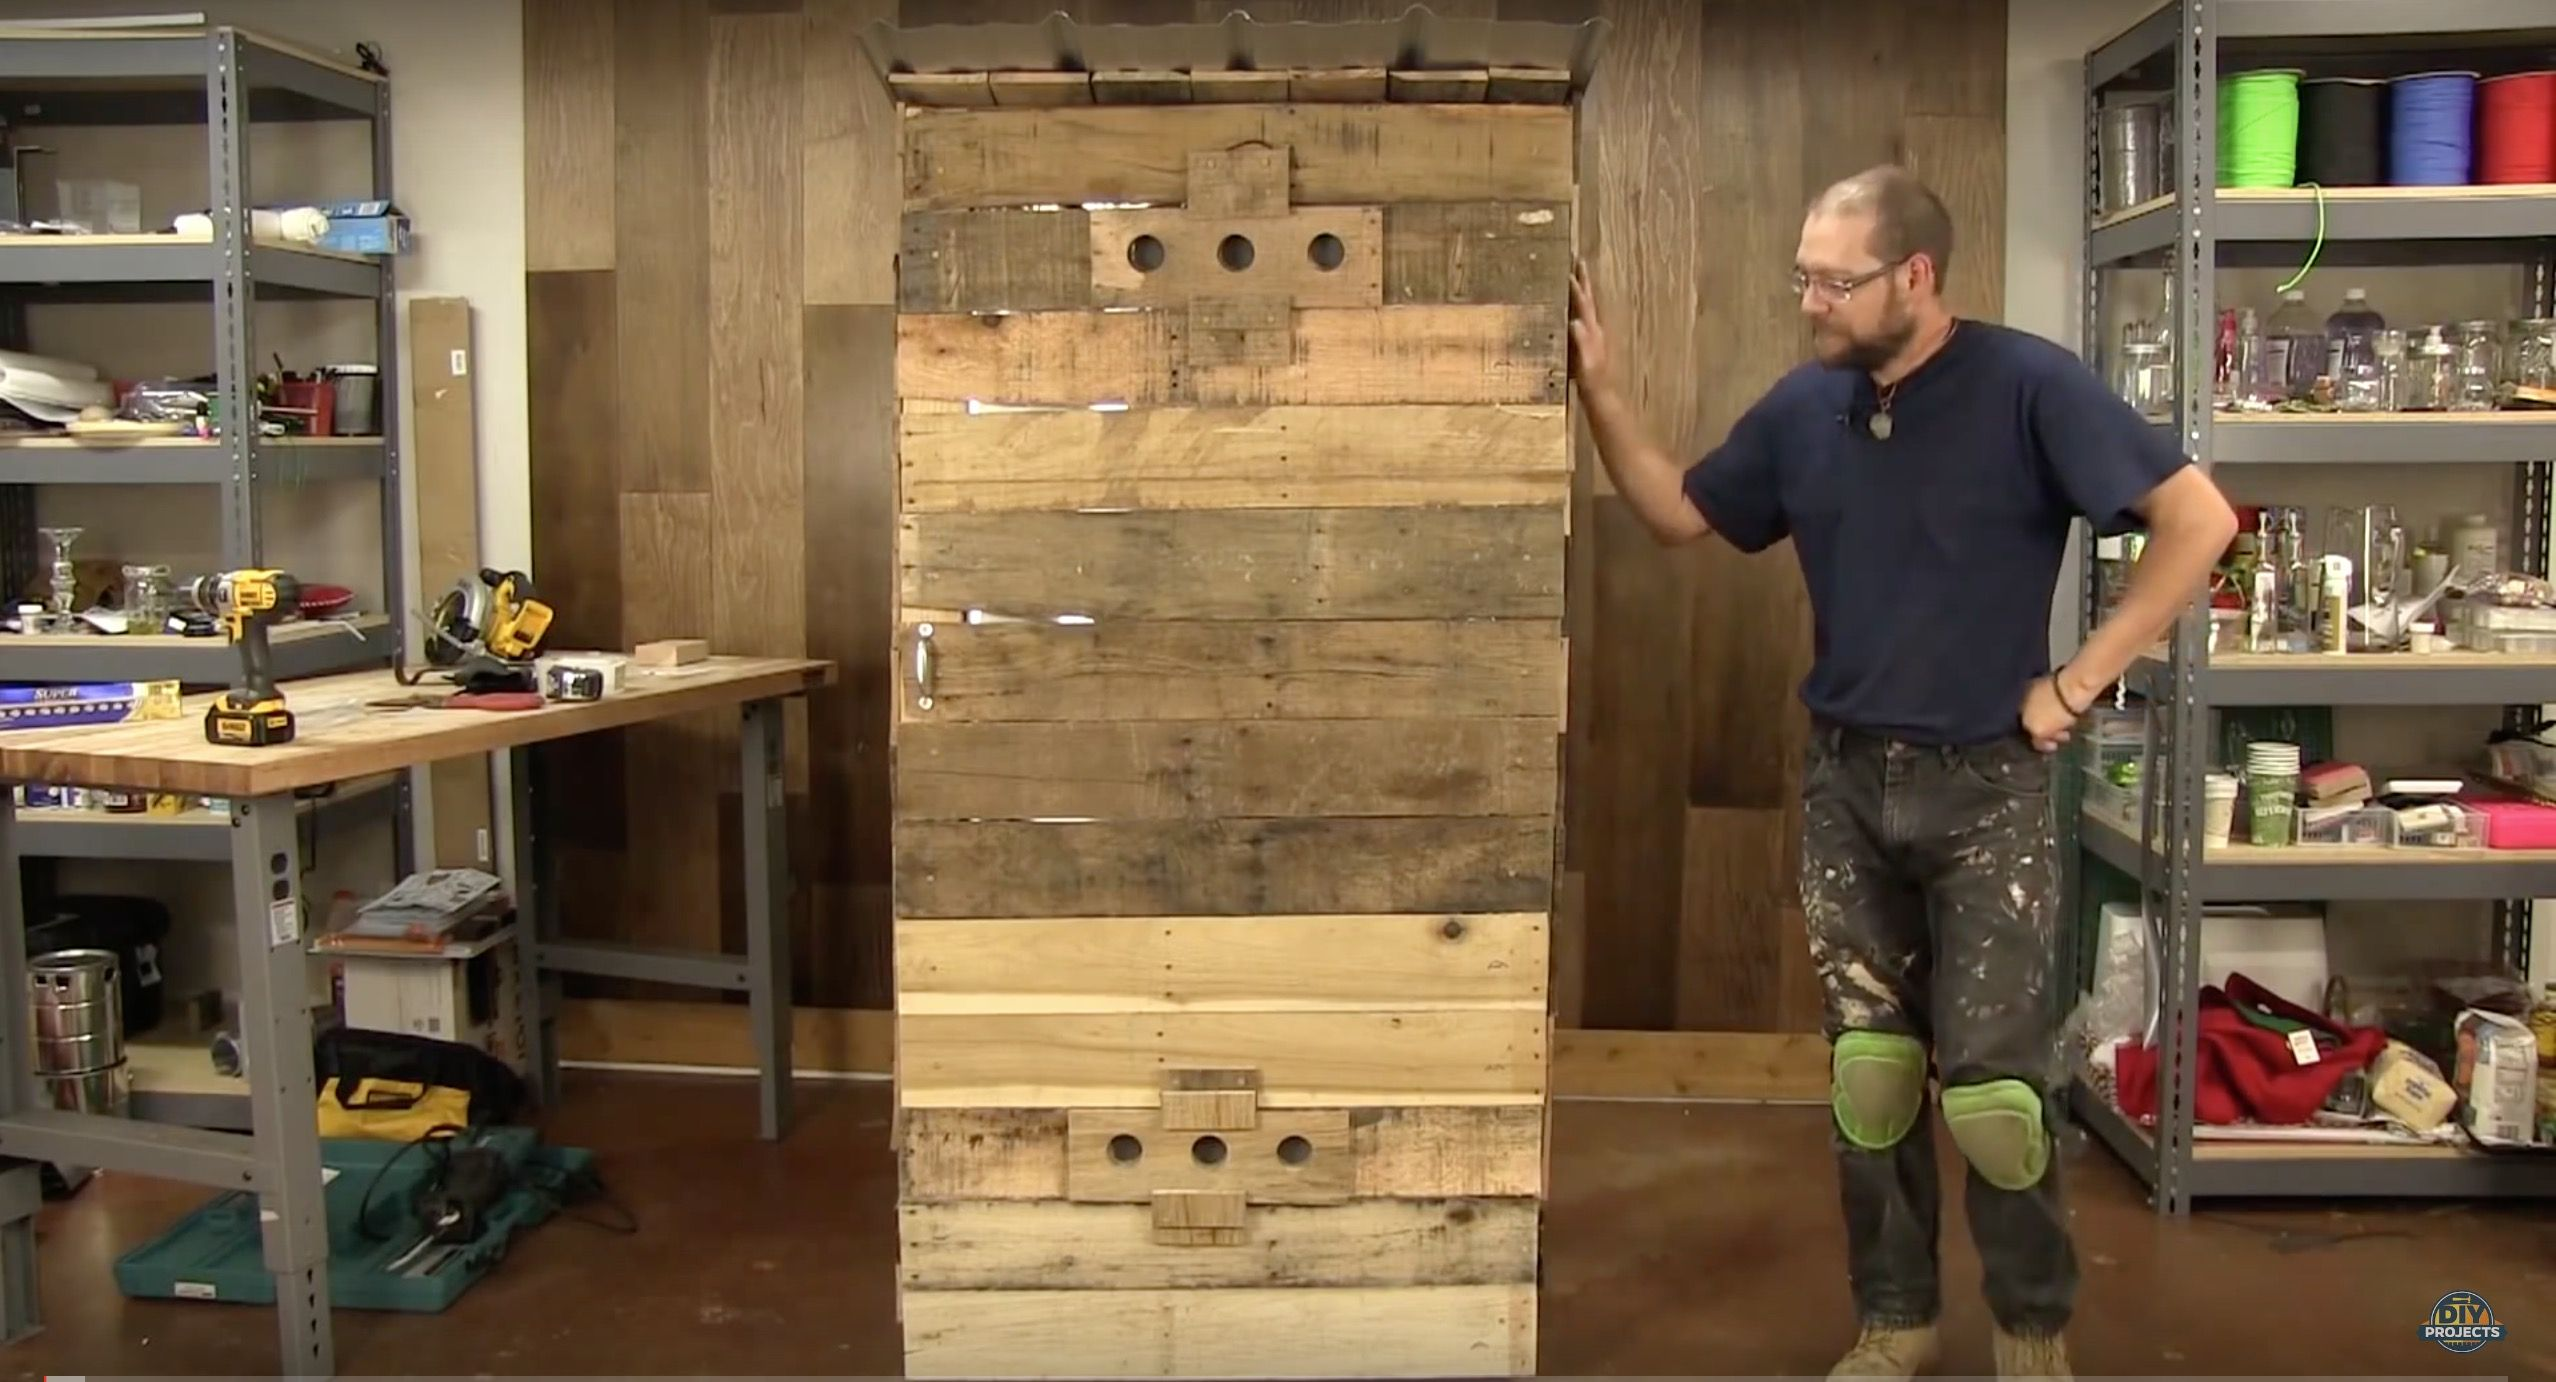 How To Build A Full Size Smokehouse for Under $100 | Diy ...